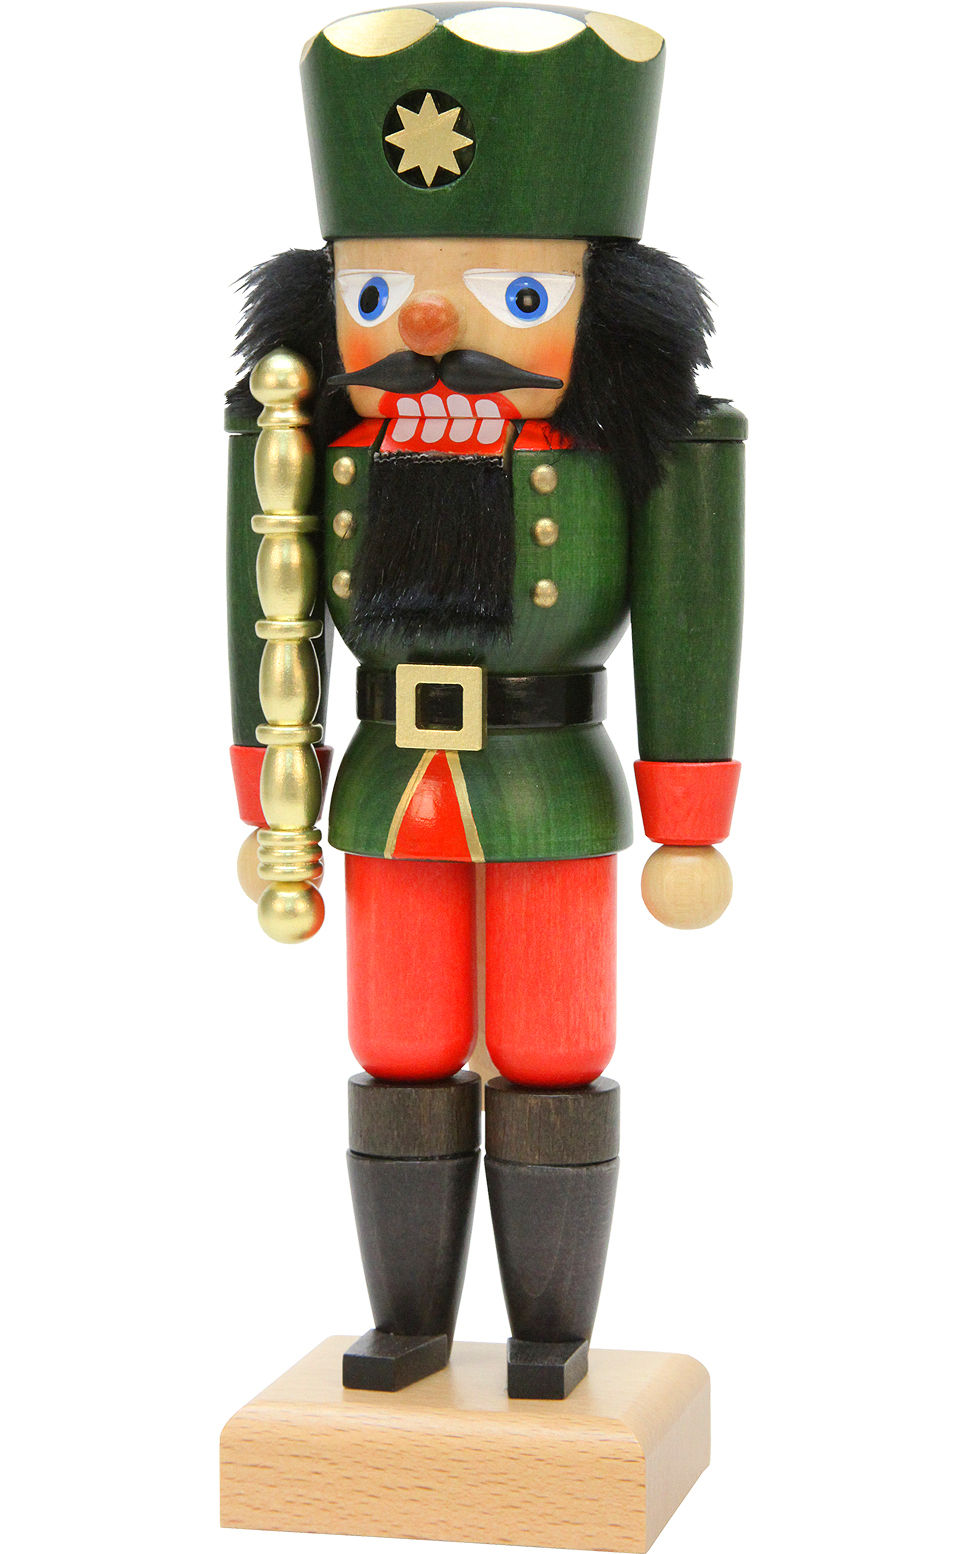 32-665 Nutcracker King in Green